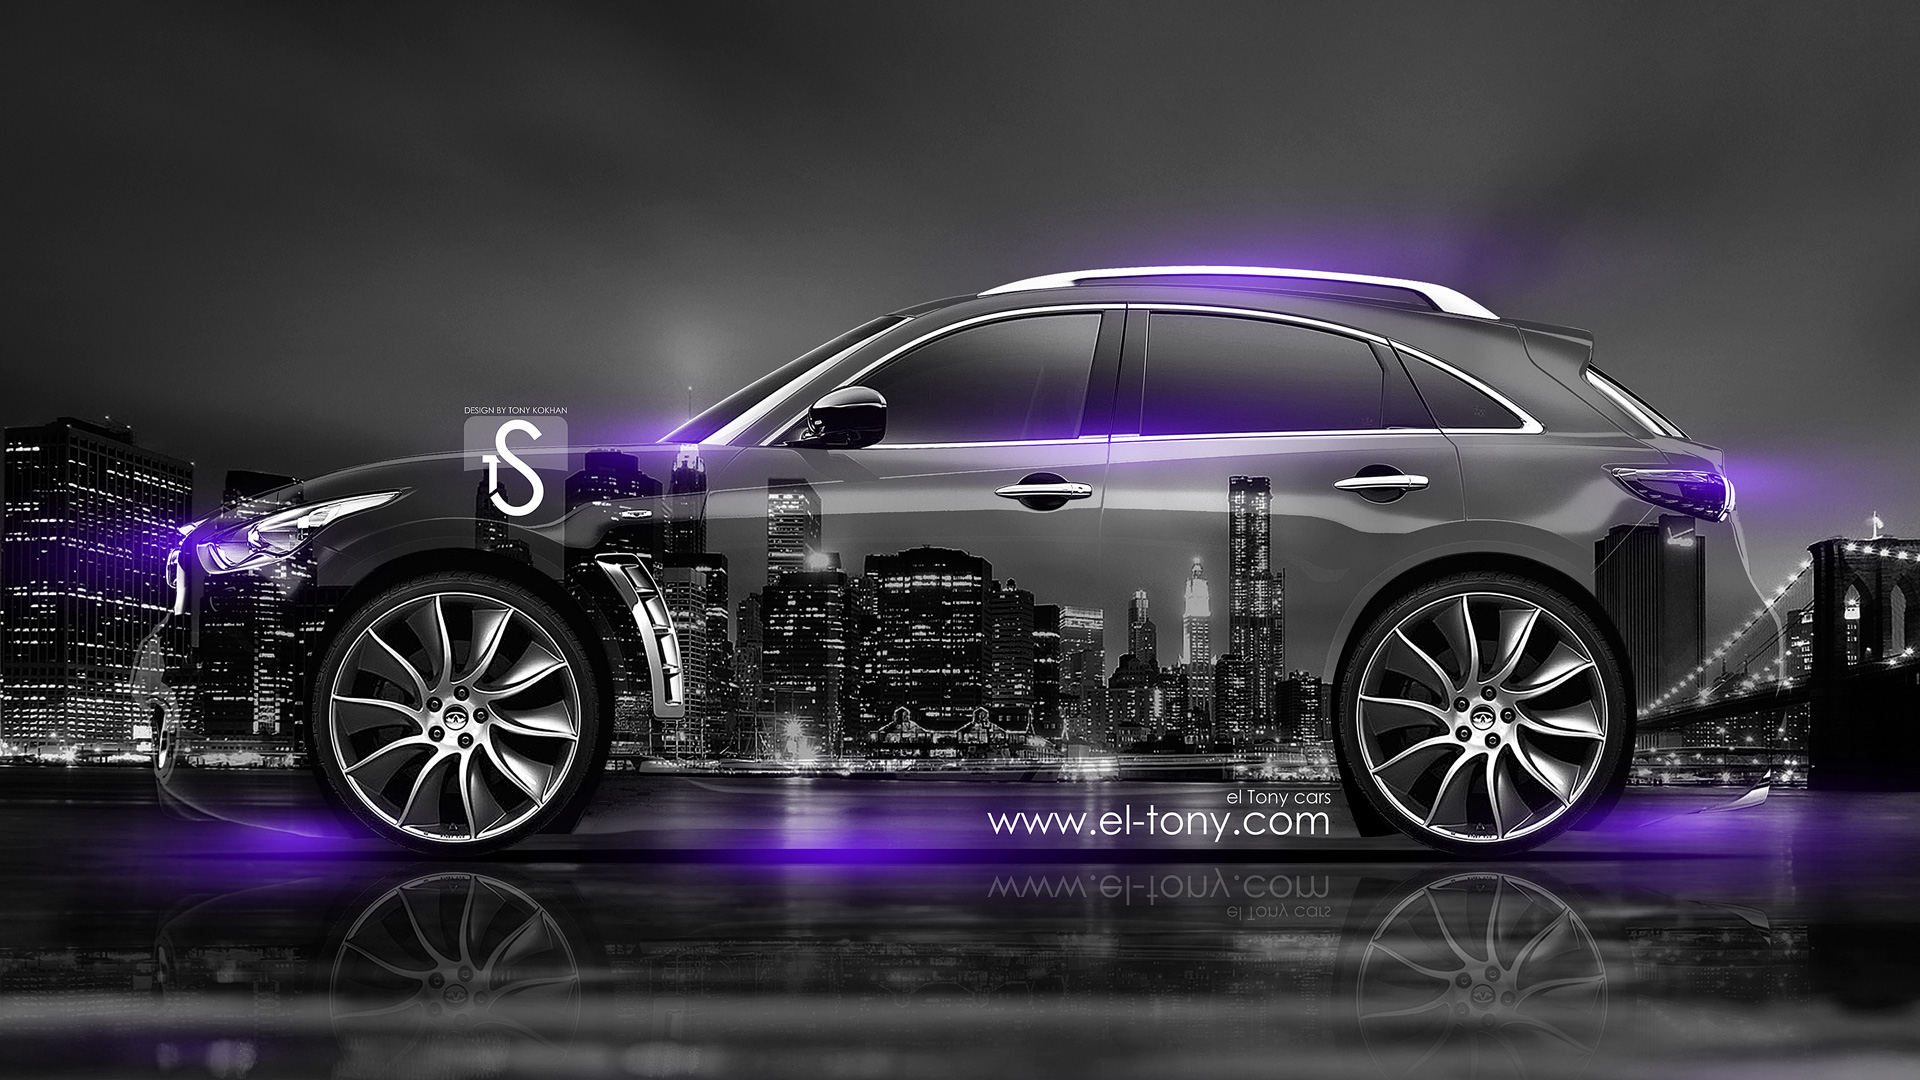 Charmant Infiniti FX Crystal City Car 2014 Violet Neon